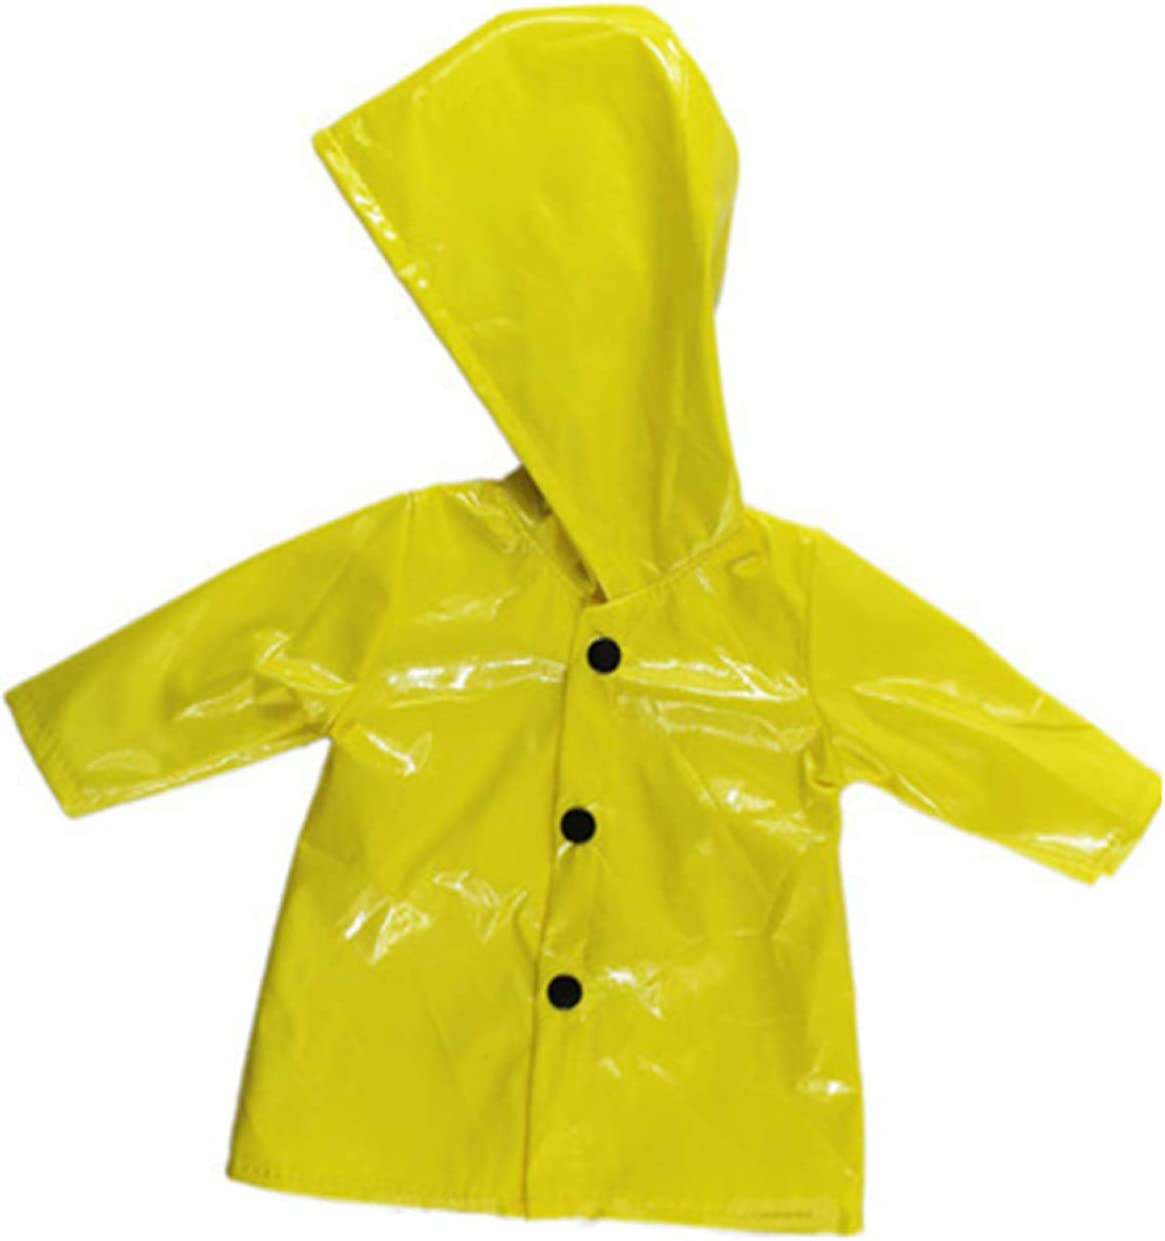 None yellow Loparker inconceivable Pretty Outfit Clothes Yellow Hooded Raincoat fits 43cm-45cm dolls for kids